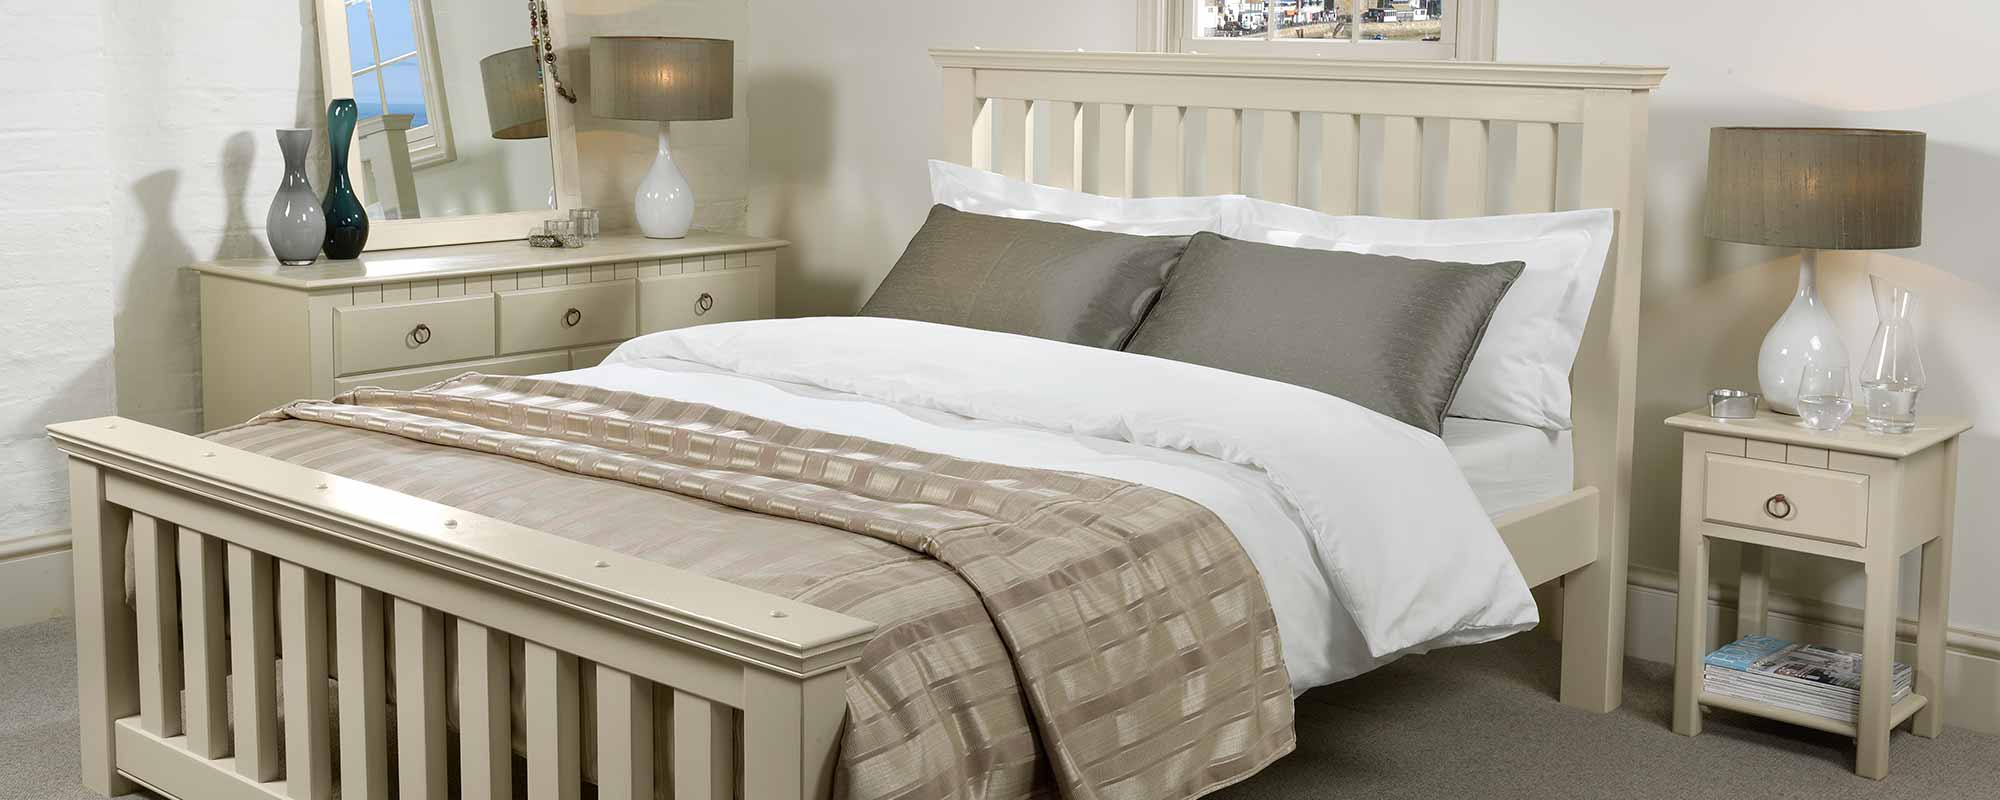 New England Beds. Handcrafted New England Beds   Shaker Beds From  809   Revival Beds